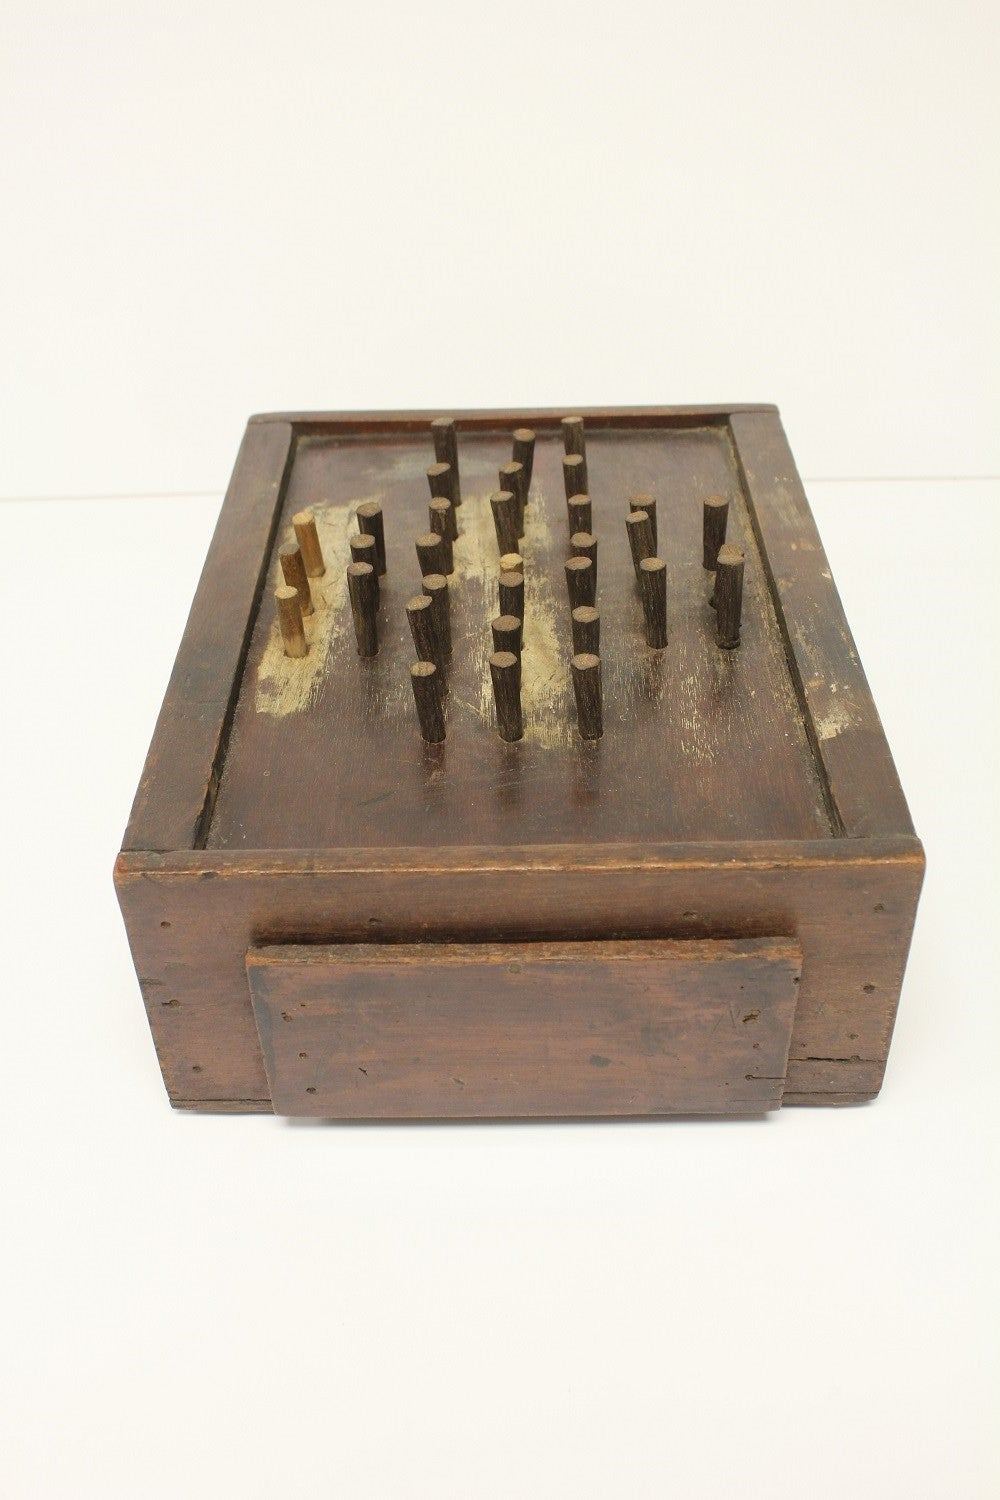 Antique Folk Art Aggravation Wooden Box Peg Board Game In Good Condition For Sale In Chicago, IL